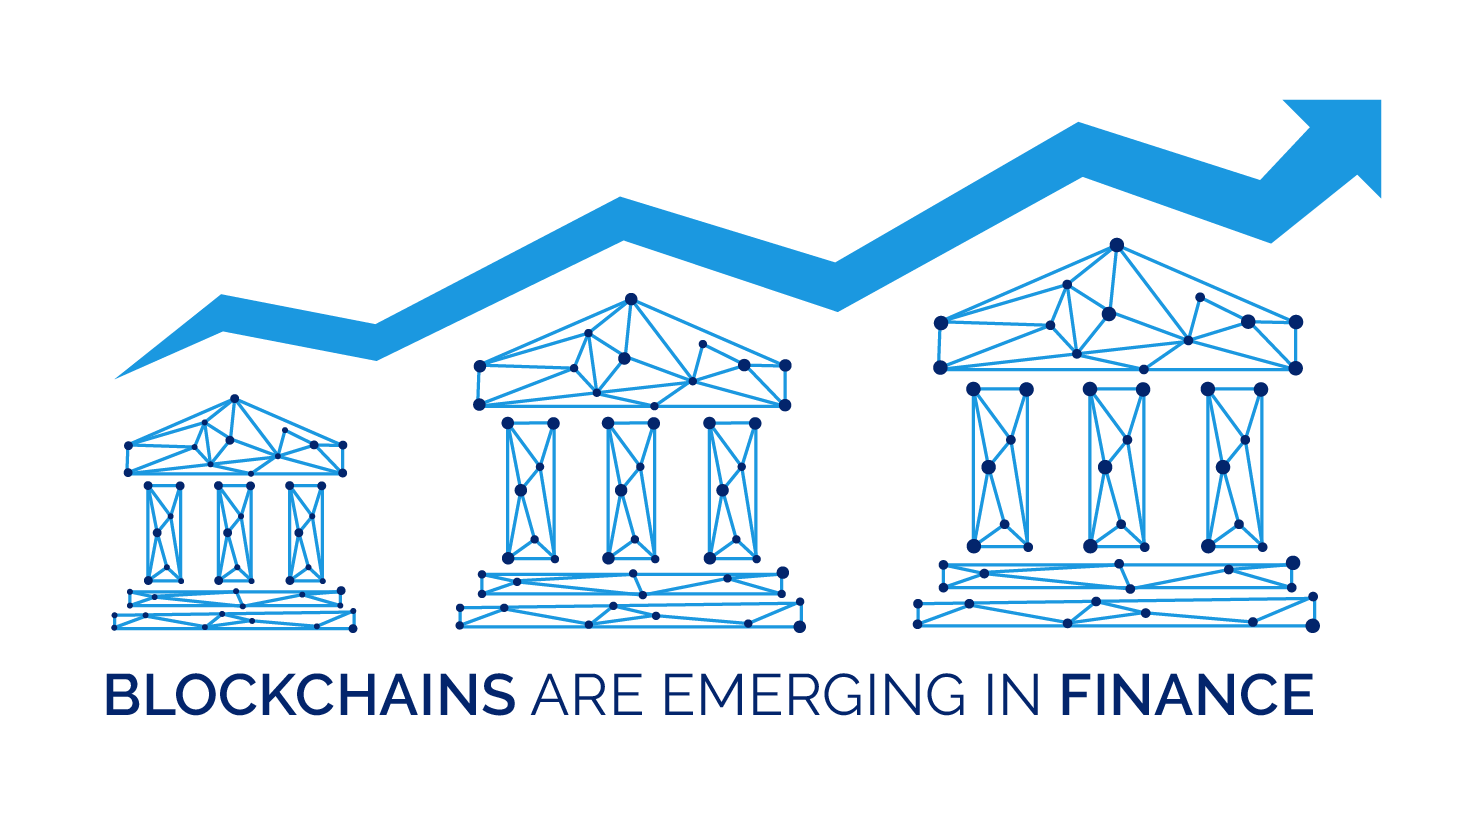 Financial Services and Blockchain Industry